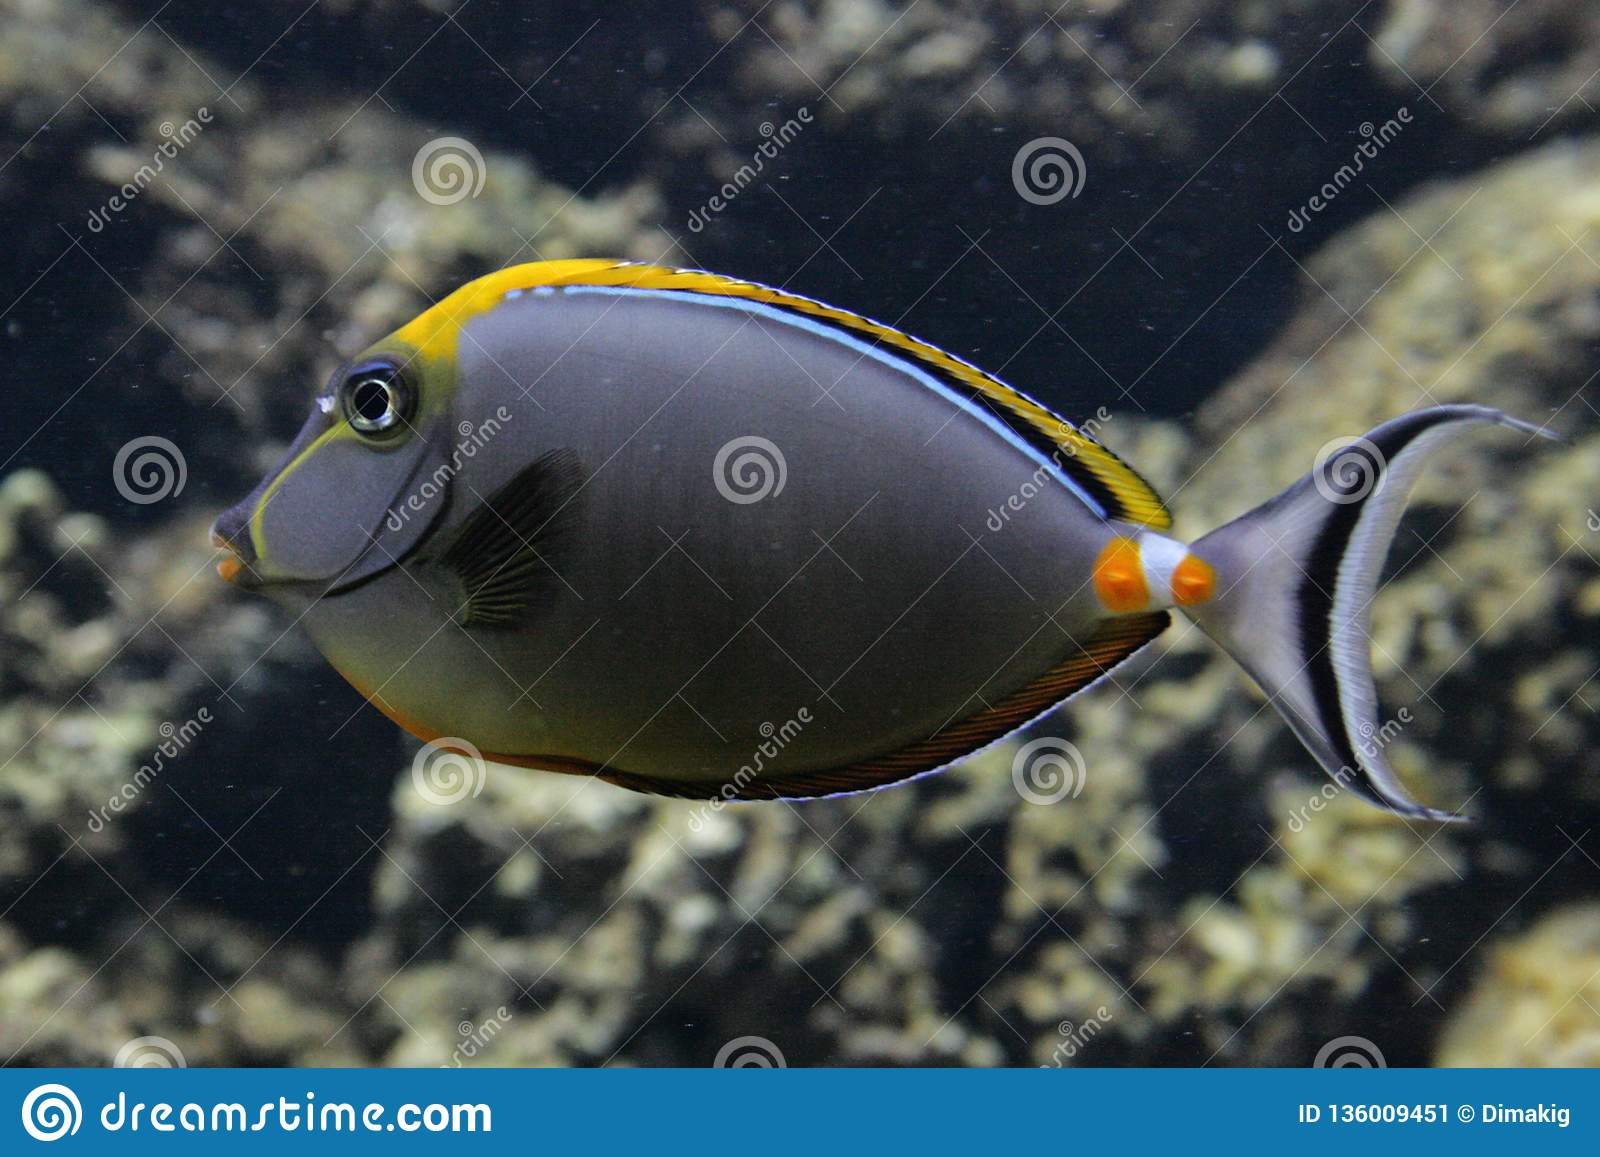 Coral reef fish close up. Animals of the ocean and sea. Marine life of Europe.